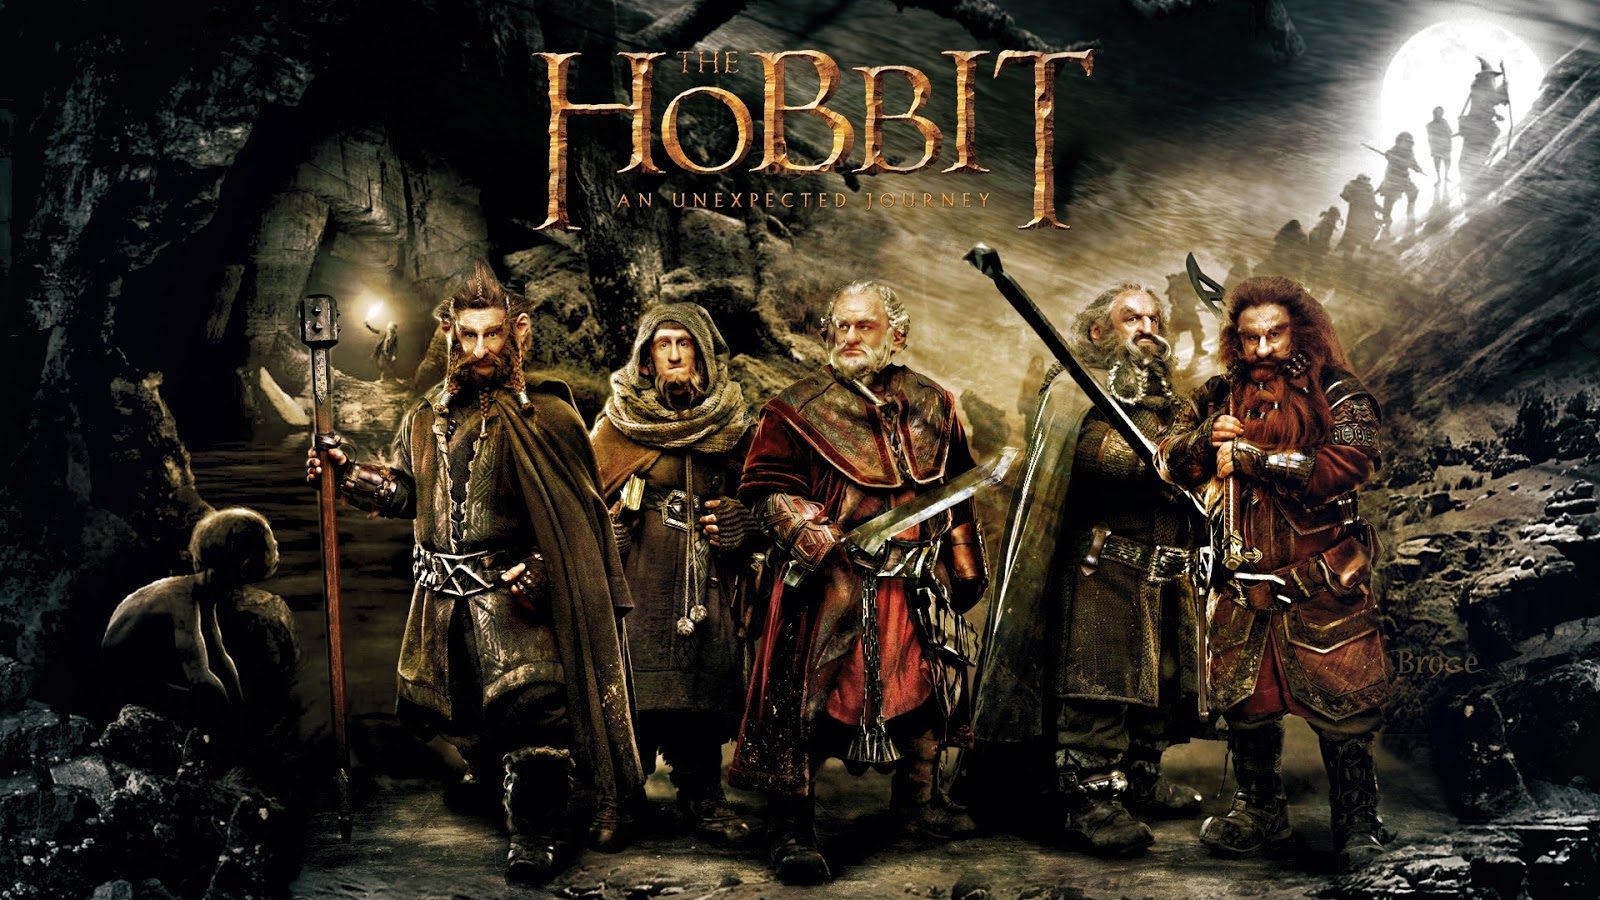 http://3.bp.blogspot.com/-0EFzWDtqIBM/UKtLmE3nICI/AAAAAAAAHgo/_ZLPhoujPxk/s1600/2012-the-hobbit-an-unexpected-journey.jpg